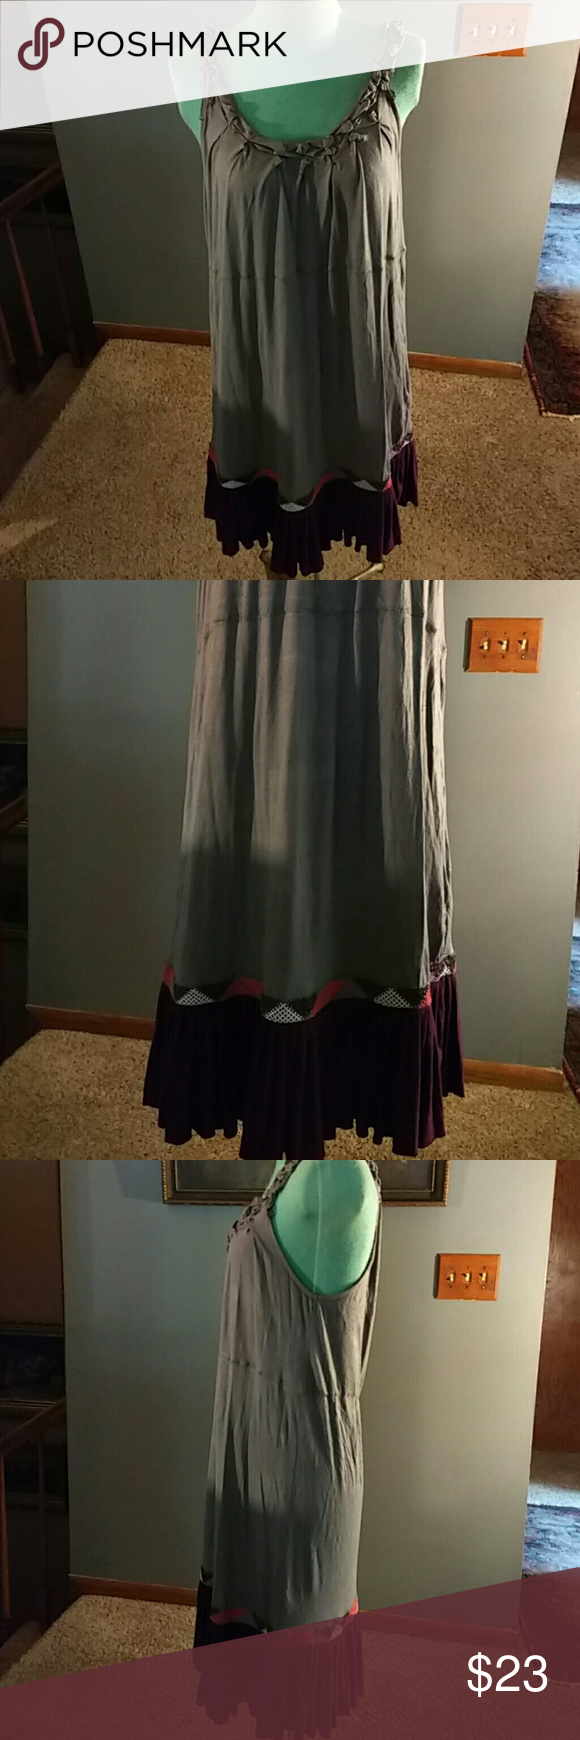 """Free People Dress Grey cotton dress with scoop neck line front and back has elastic around neckline and straps burgundy colored around the bottom part with a embroidery design above that looser fit 40"""" long Free People Dresses"""